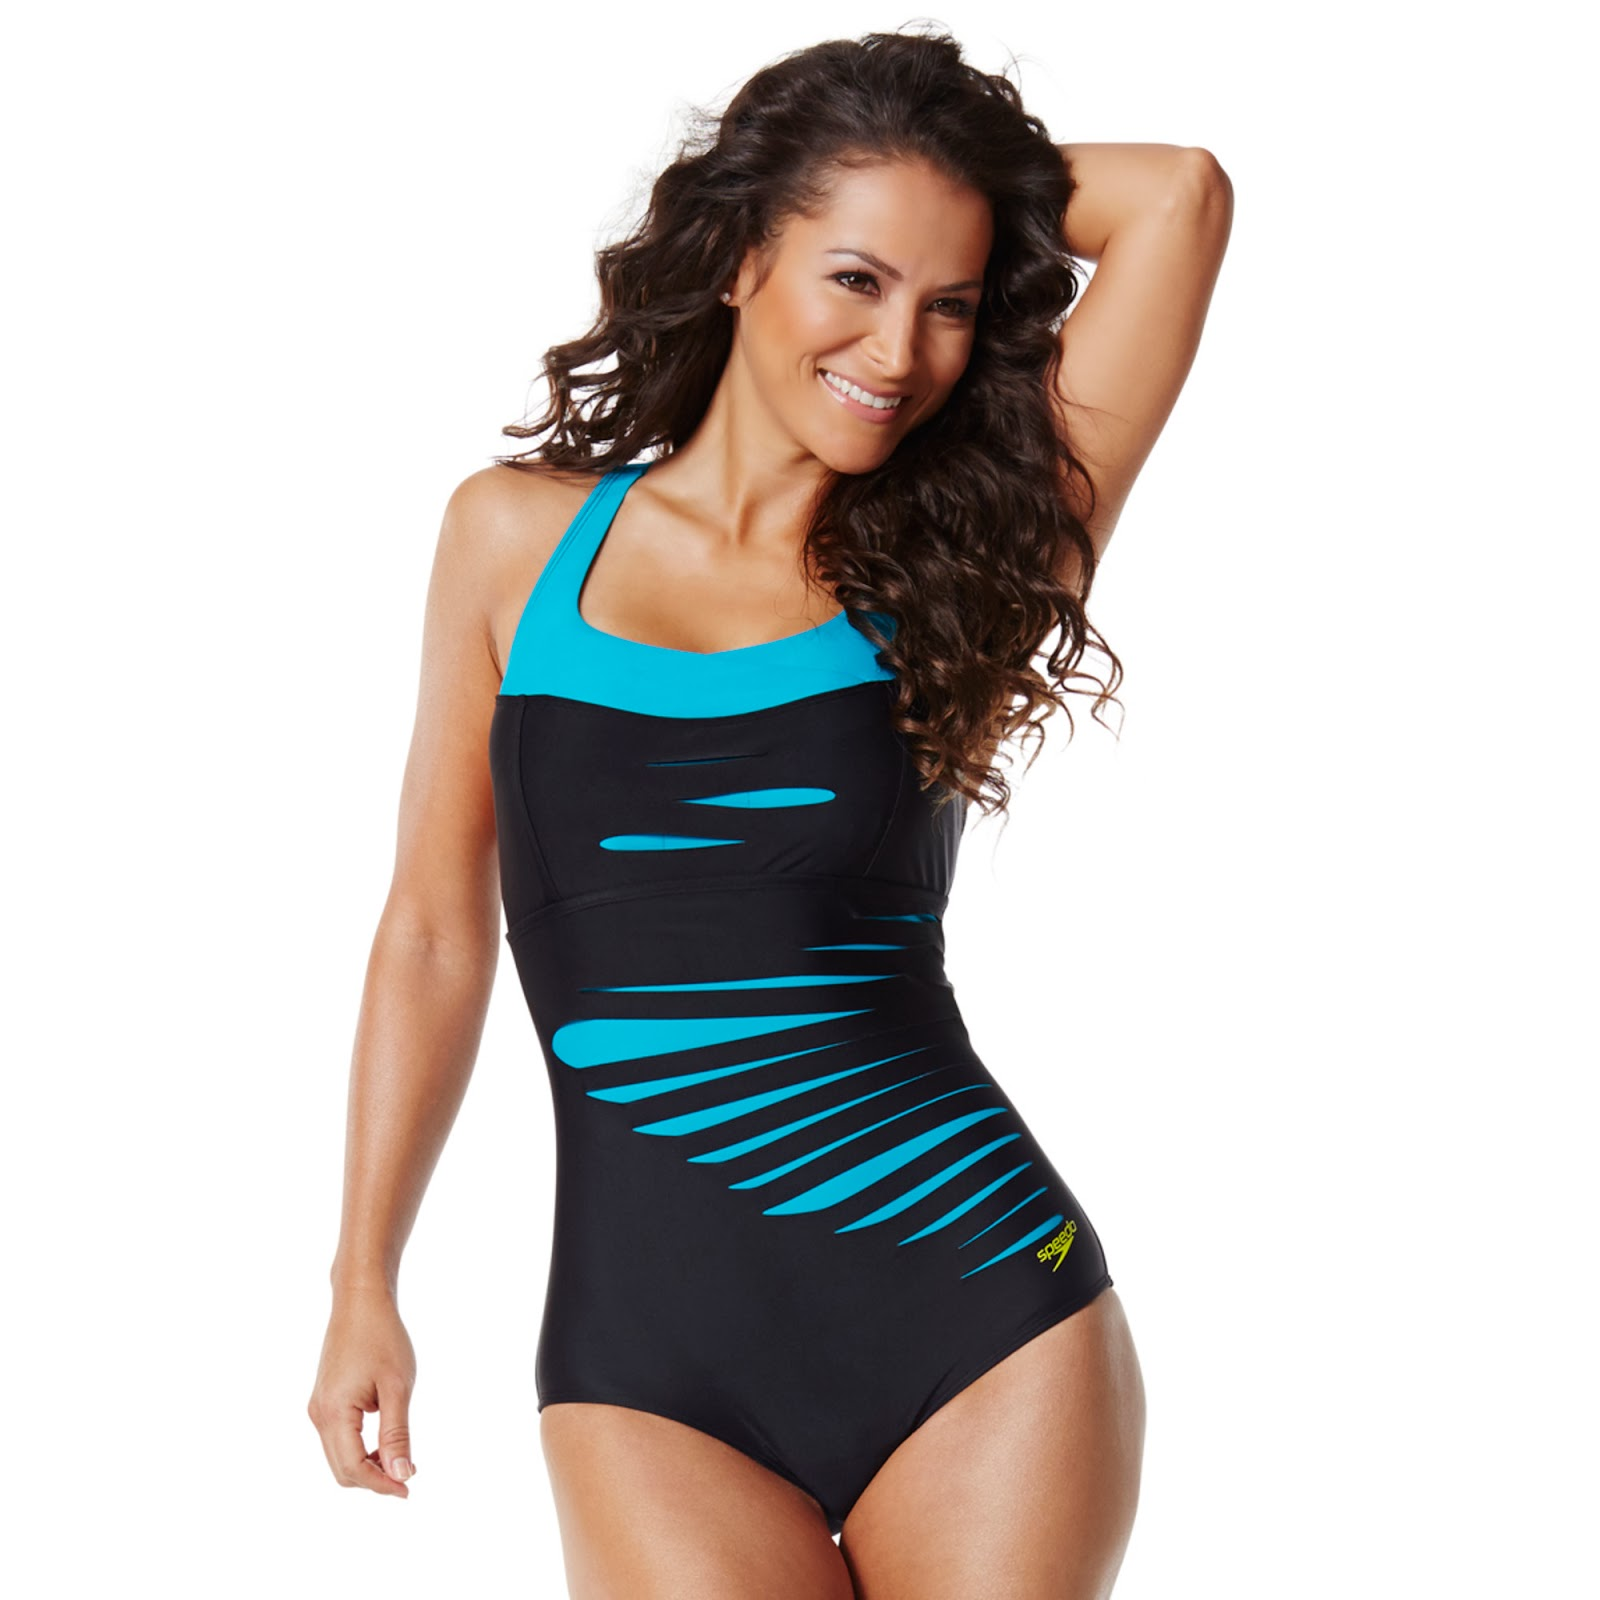 http://www.zumba.com/en-US/store-zin/US/product/slash-o-rama-cross-back-one-piece?color=Black